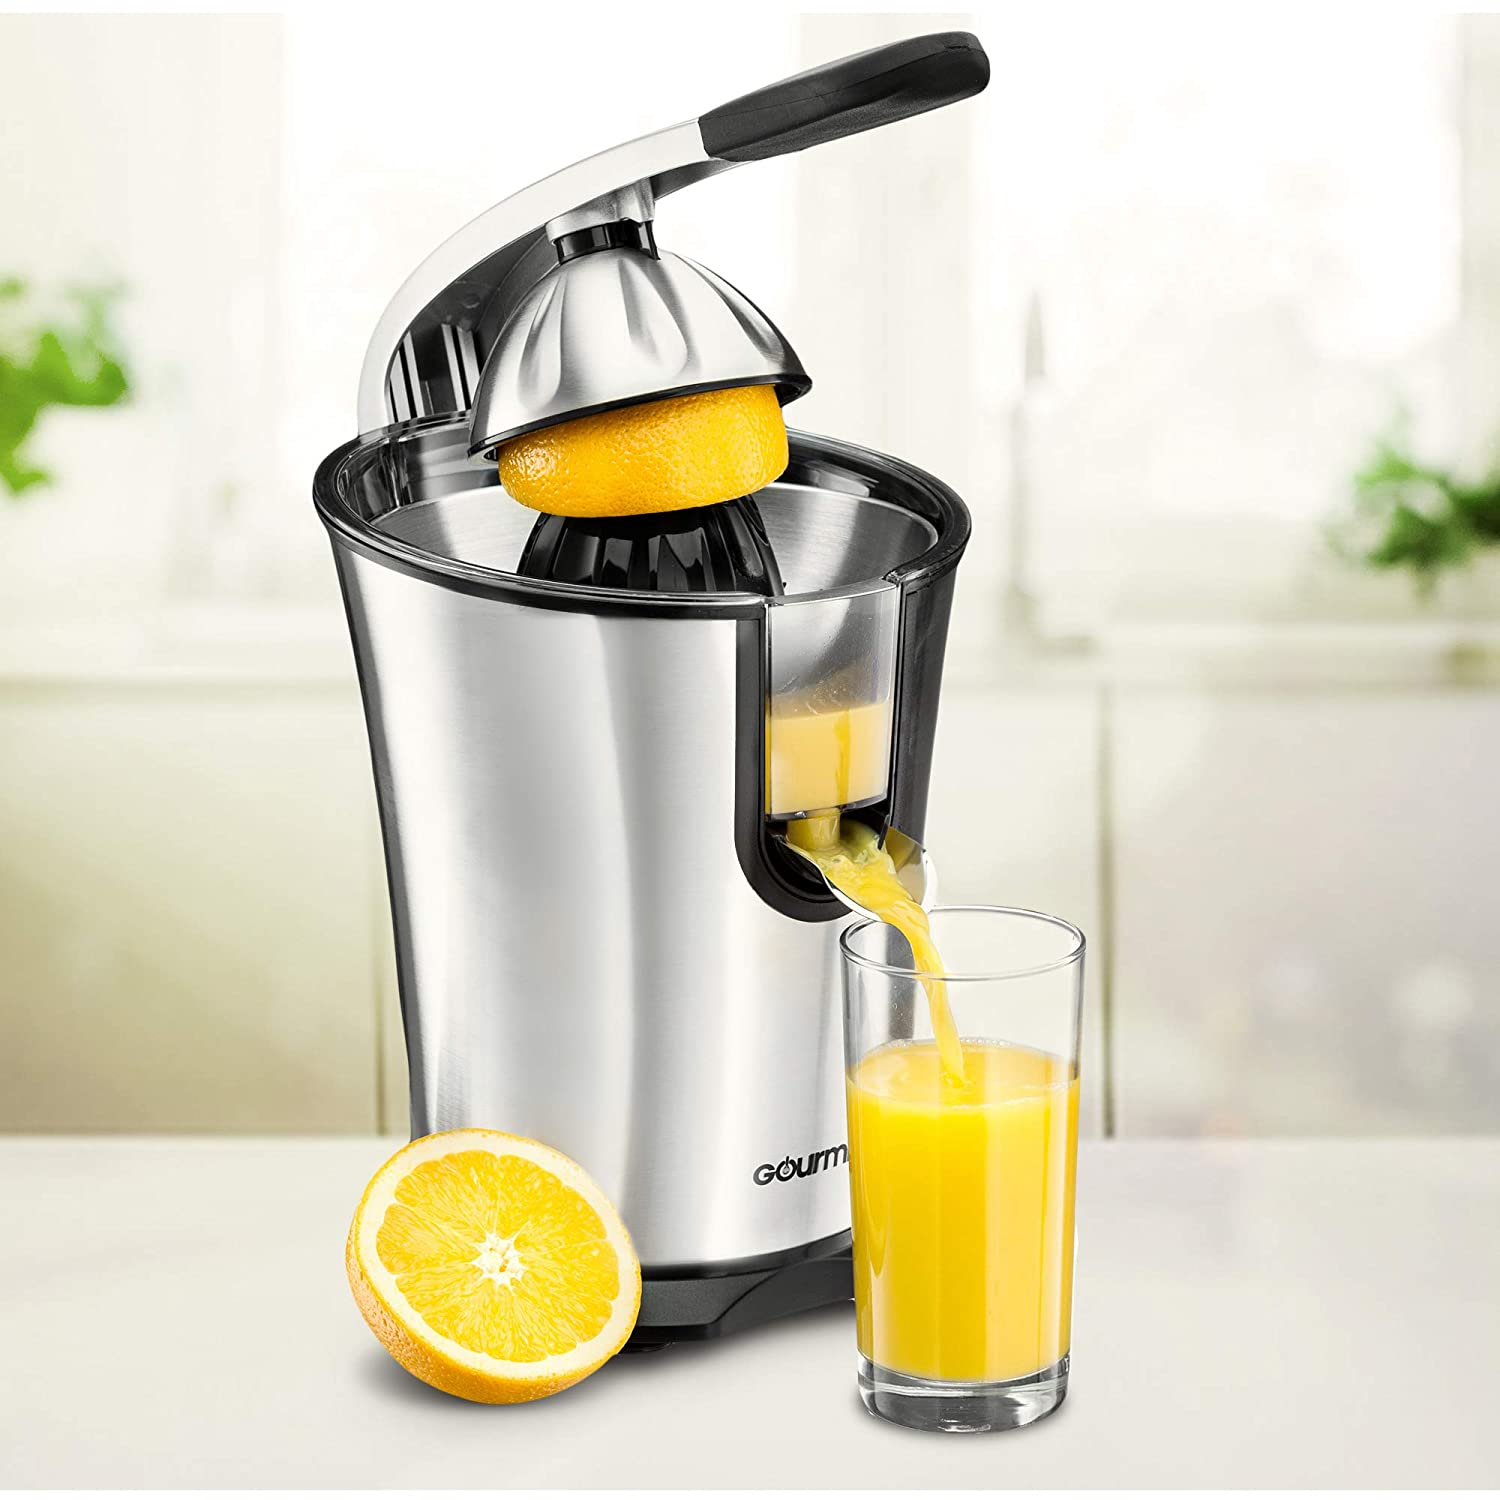 Gourmia EPJ100 Electric Citrus Juicer Stainless Steel 10 QT 160 Watts Rubber Handle And Cone Lid For Easy Use One-Size-Fits-All Juice Cone For Easy Storage. – 110V